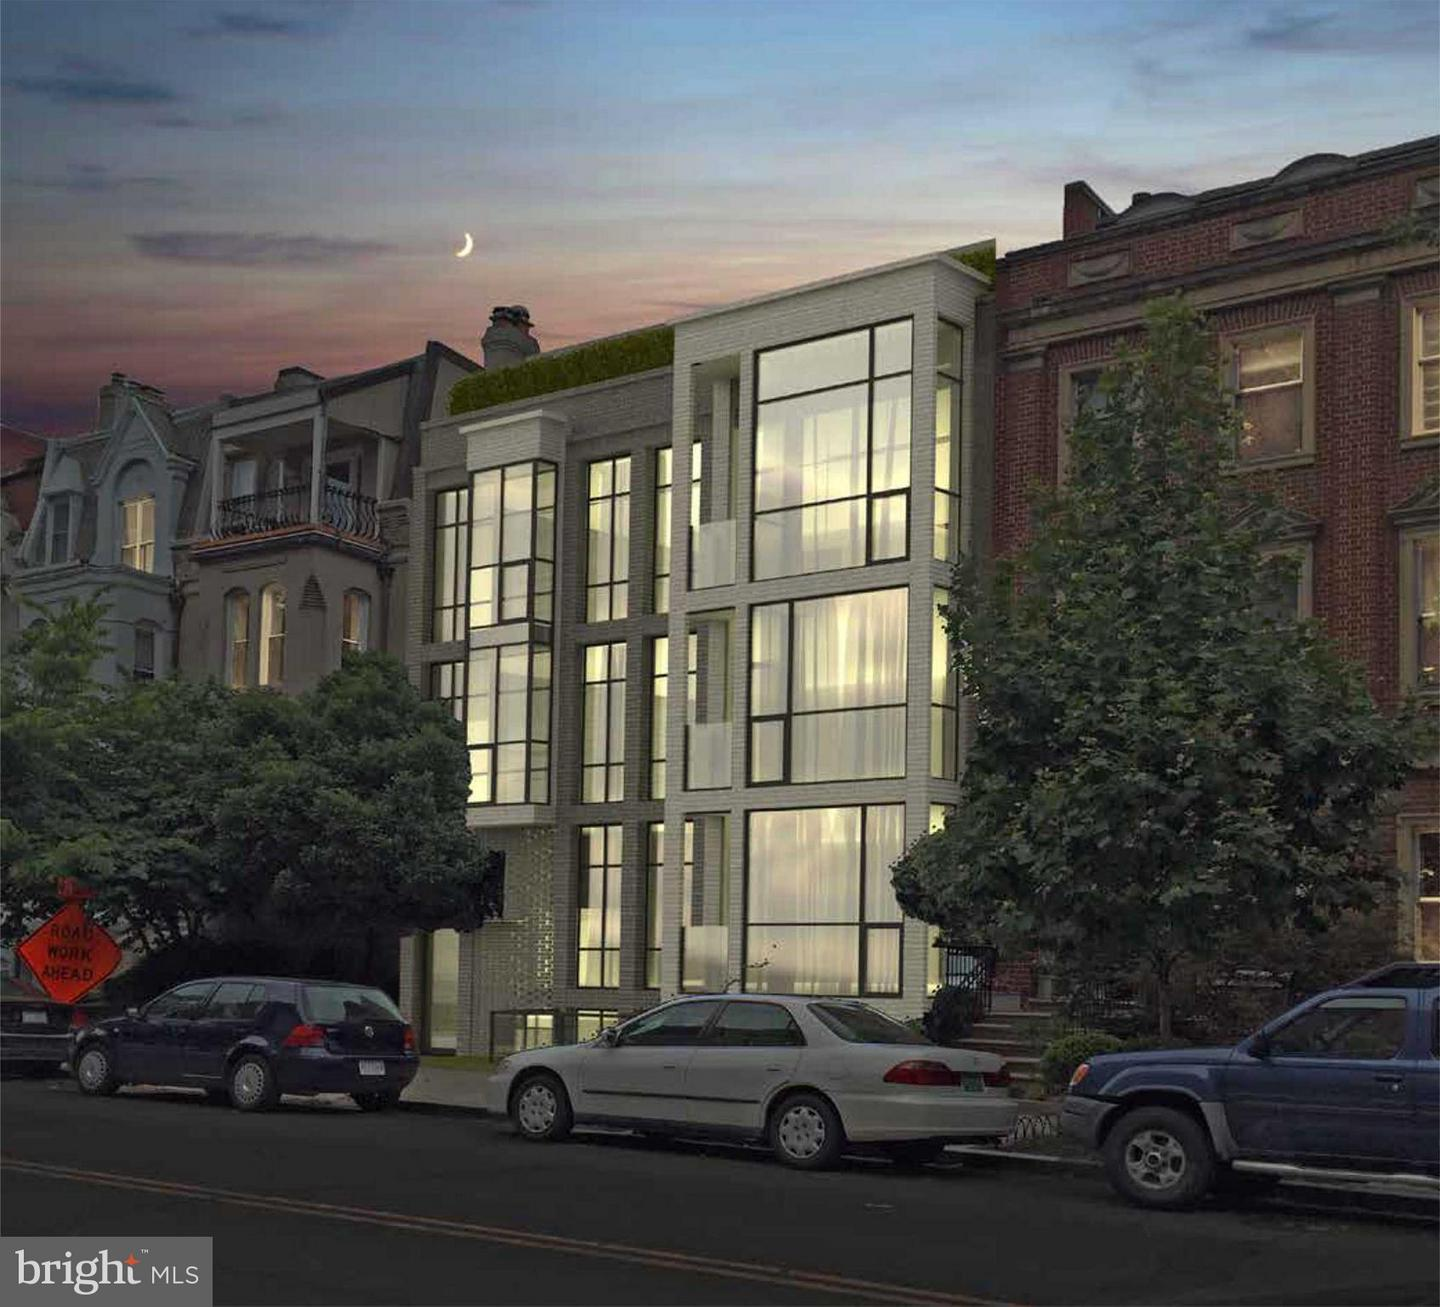 Single Family Home for Sale at 1761 P St Nw #Ph 1 1761 P St Nw #Ph 1 Washington, District Of Columbia 20036 United States